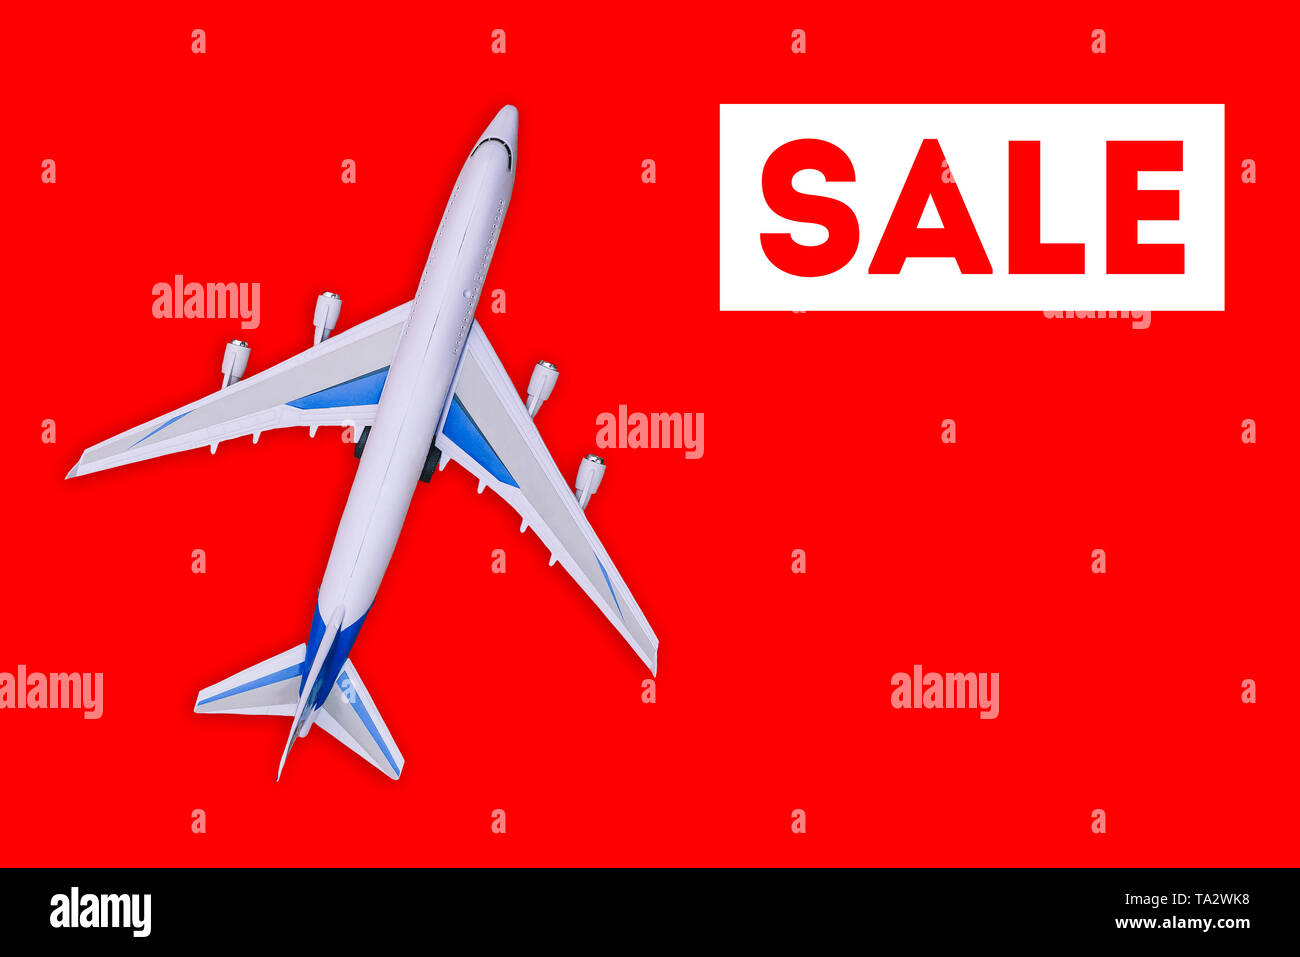 Travel and tourism concept. . Sale of air tickets and travel vouchers. Passenger aircraft on a red background - Stock Image